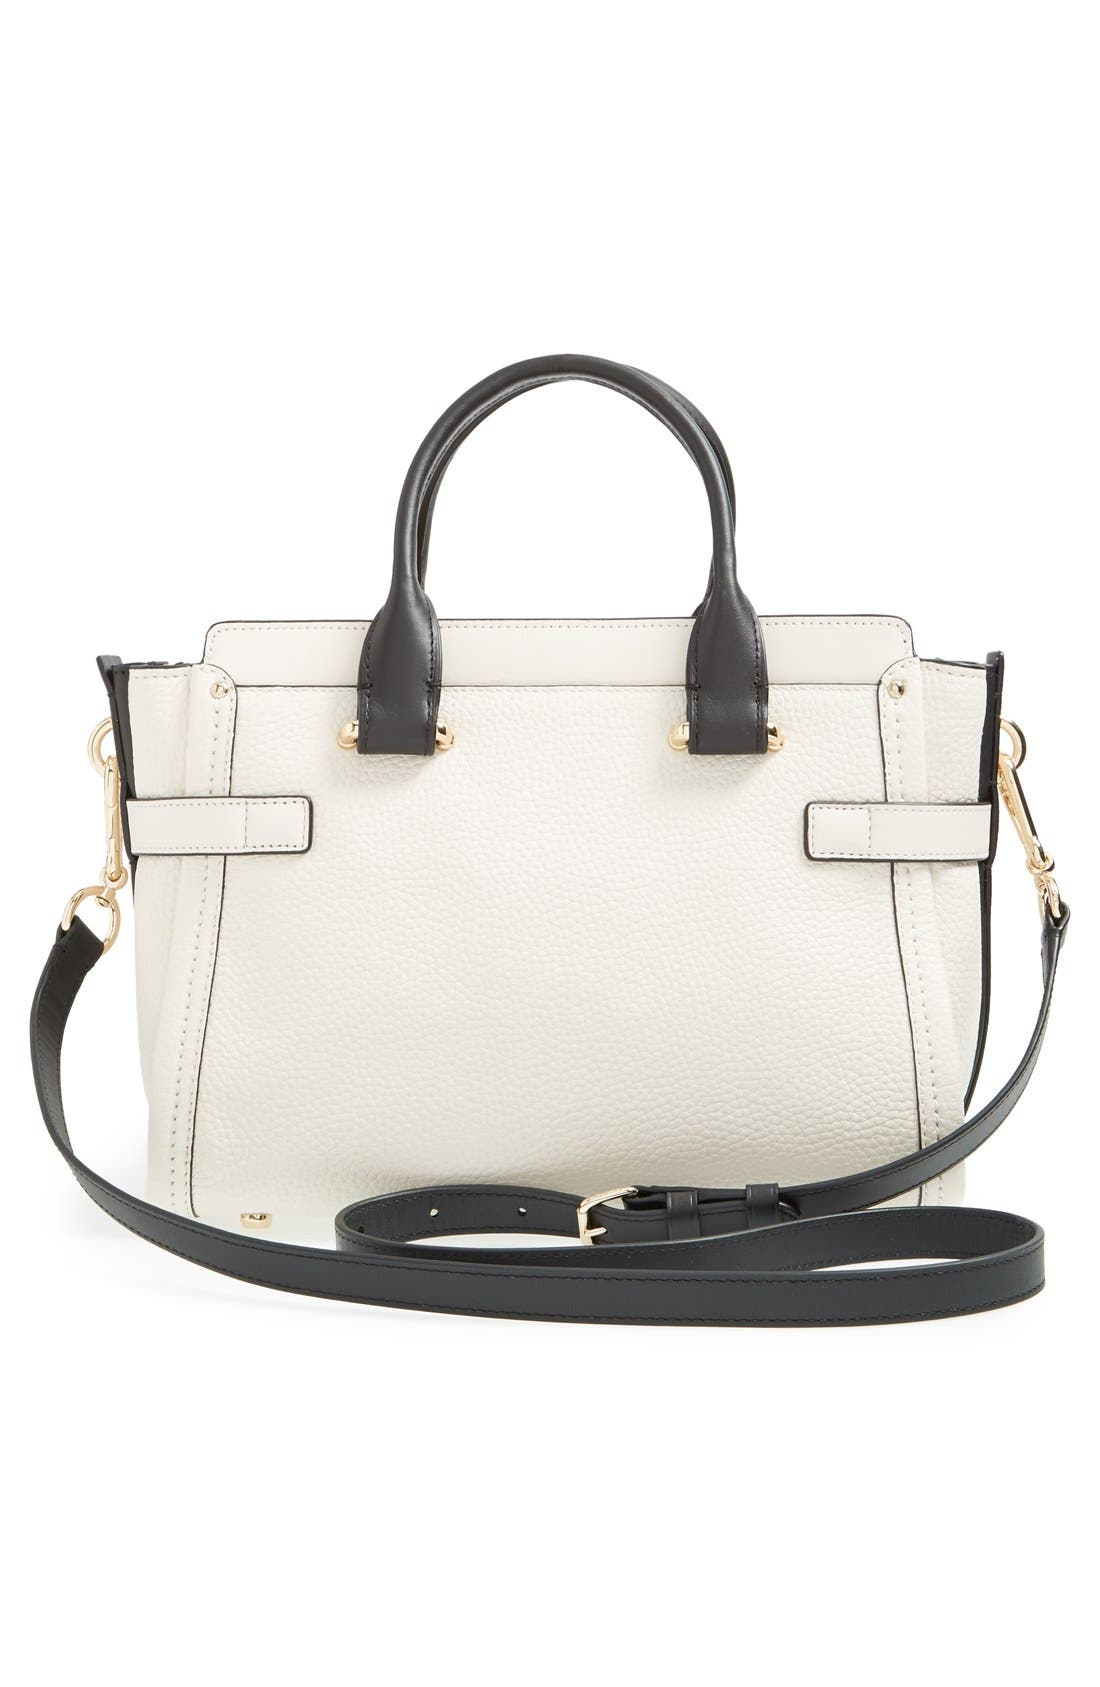 'Swagger 35' Colorblock Leather Satchel,                             Alternate thumbnail 6, color,                             178